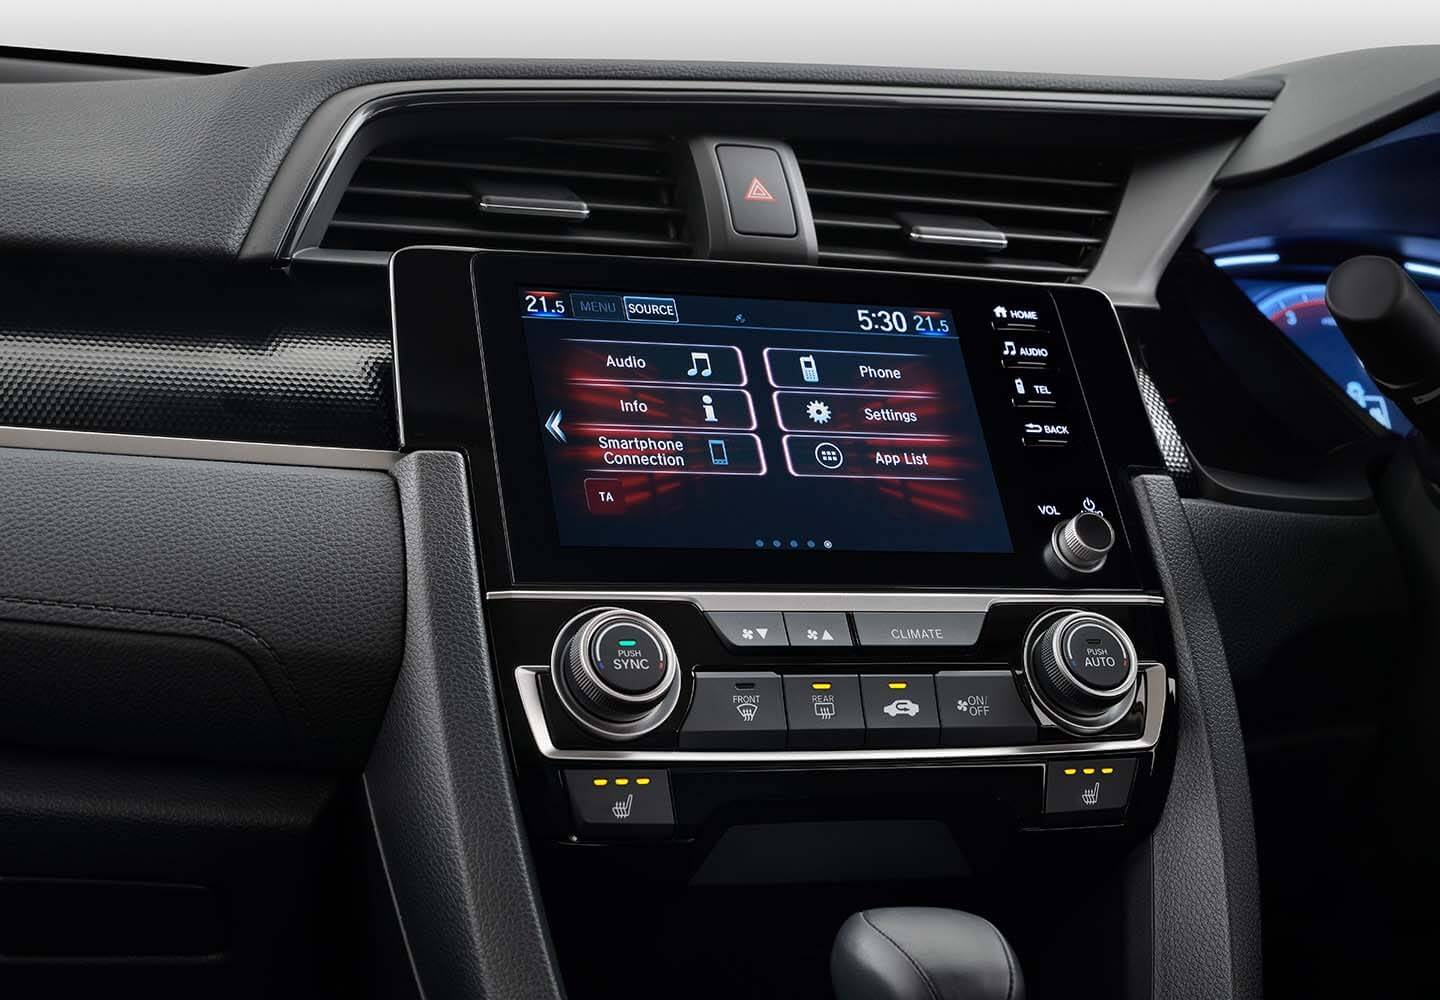 Civic Sedan 7-inch Display